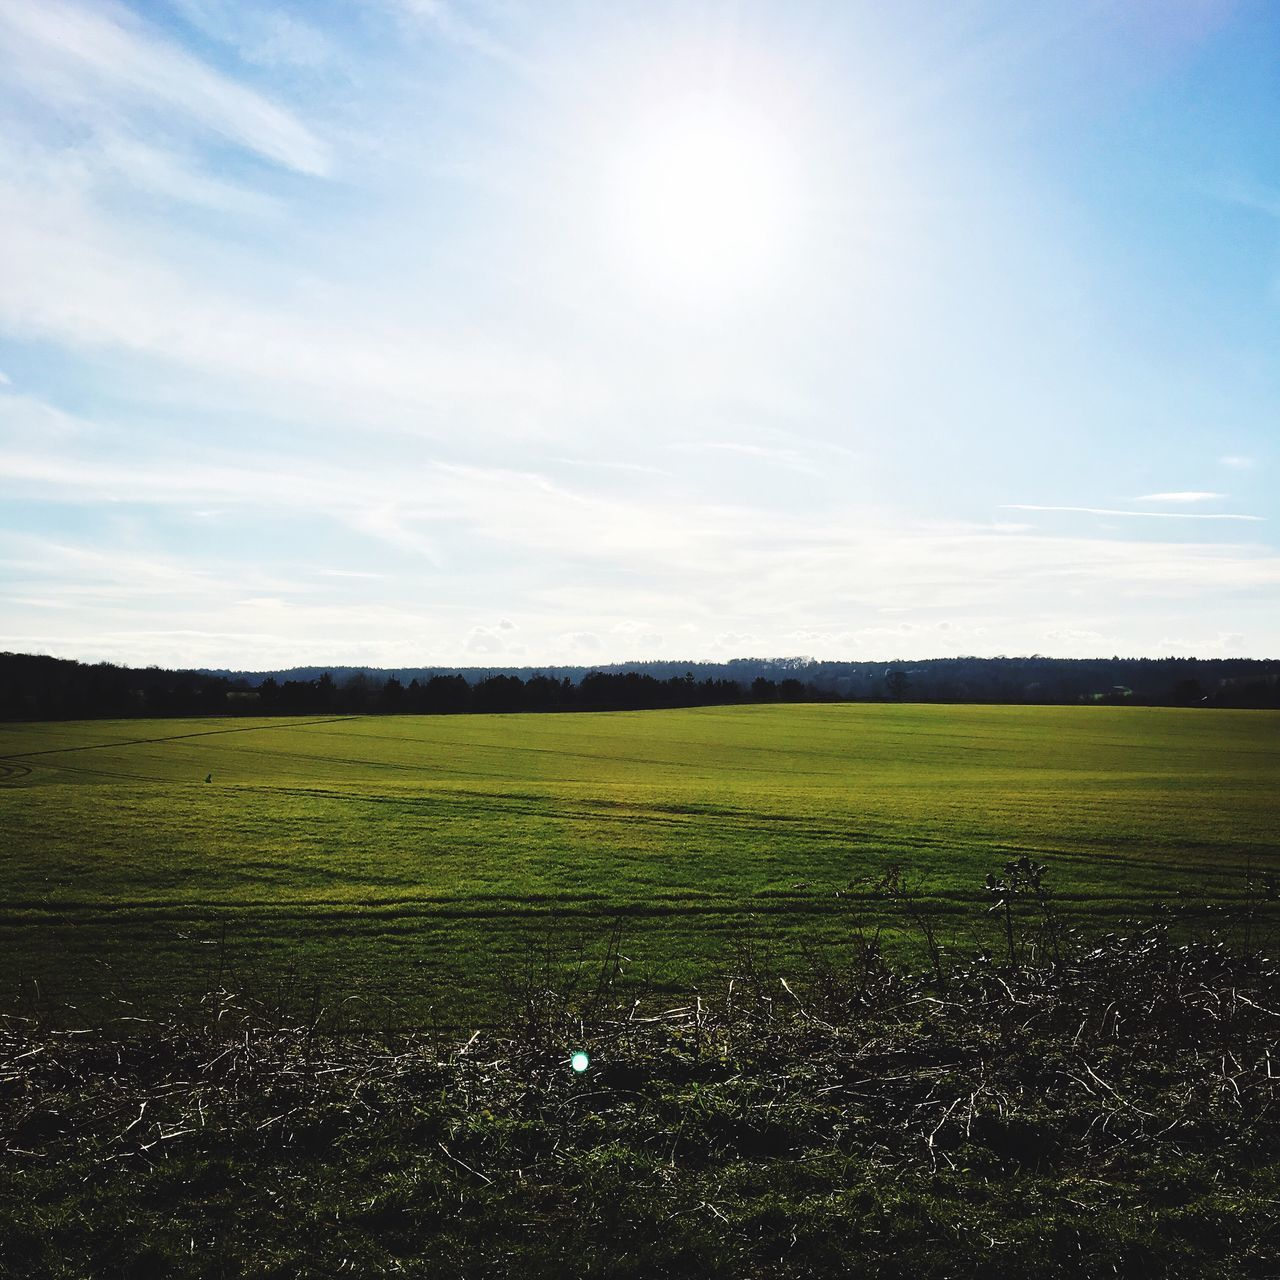 landscape, field, sky, nature, agriculture, tranquil scene, tranquility, sun, grass, sunlight, no people, beauty in nature, scenics, growth, scenery, outdoors, day, blue sky